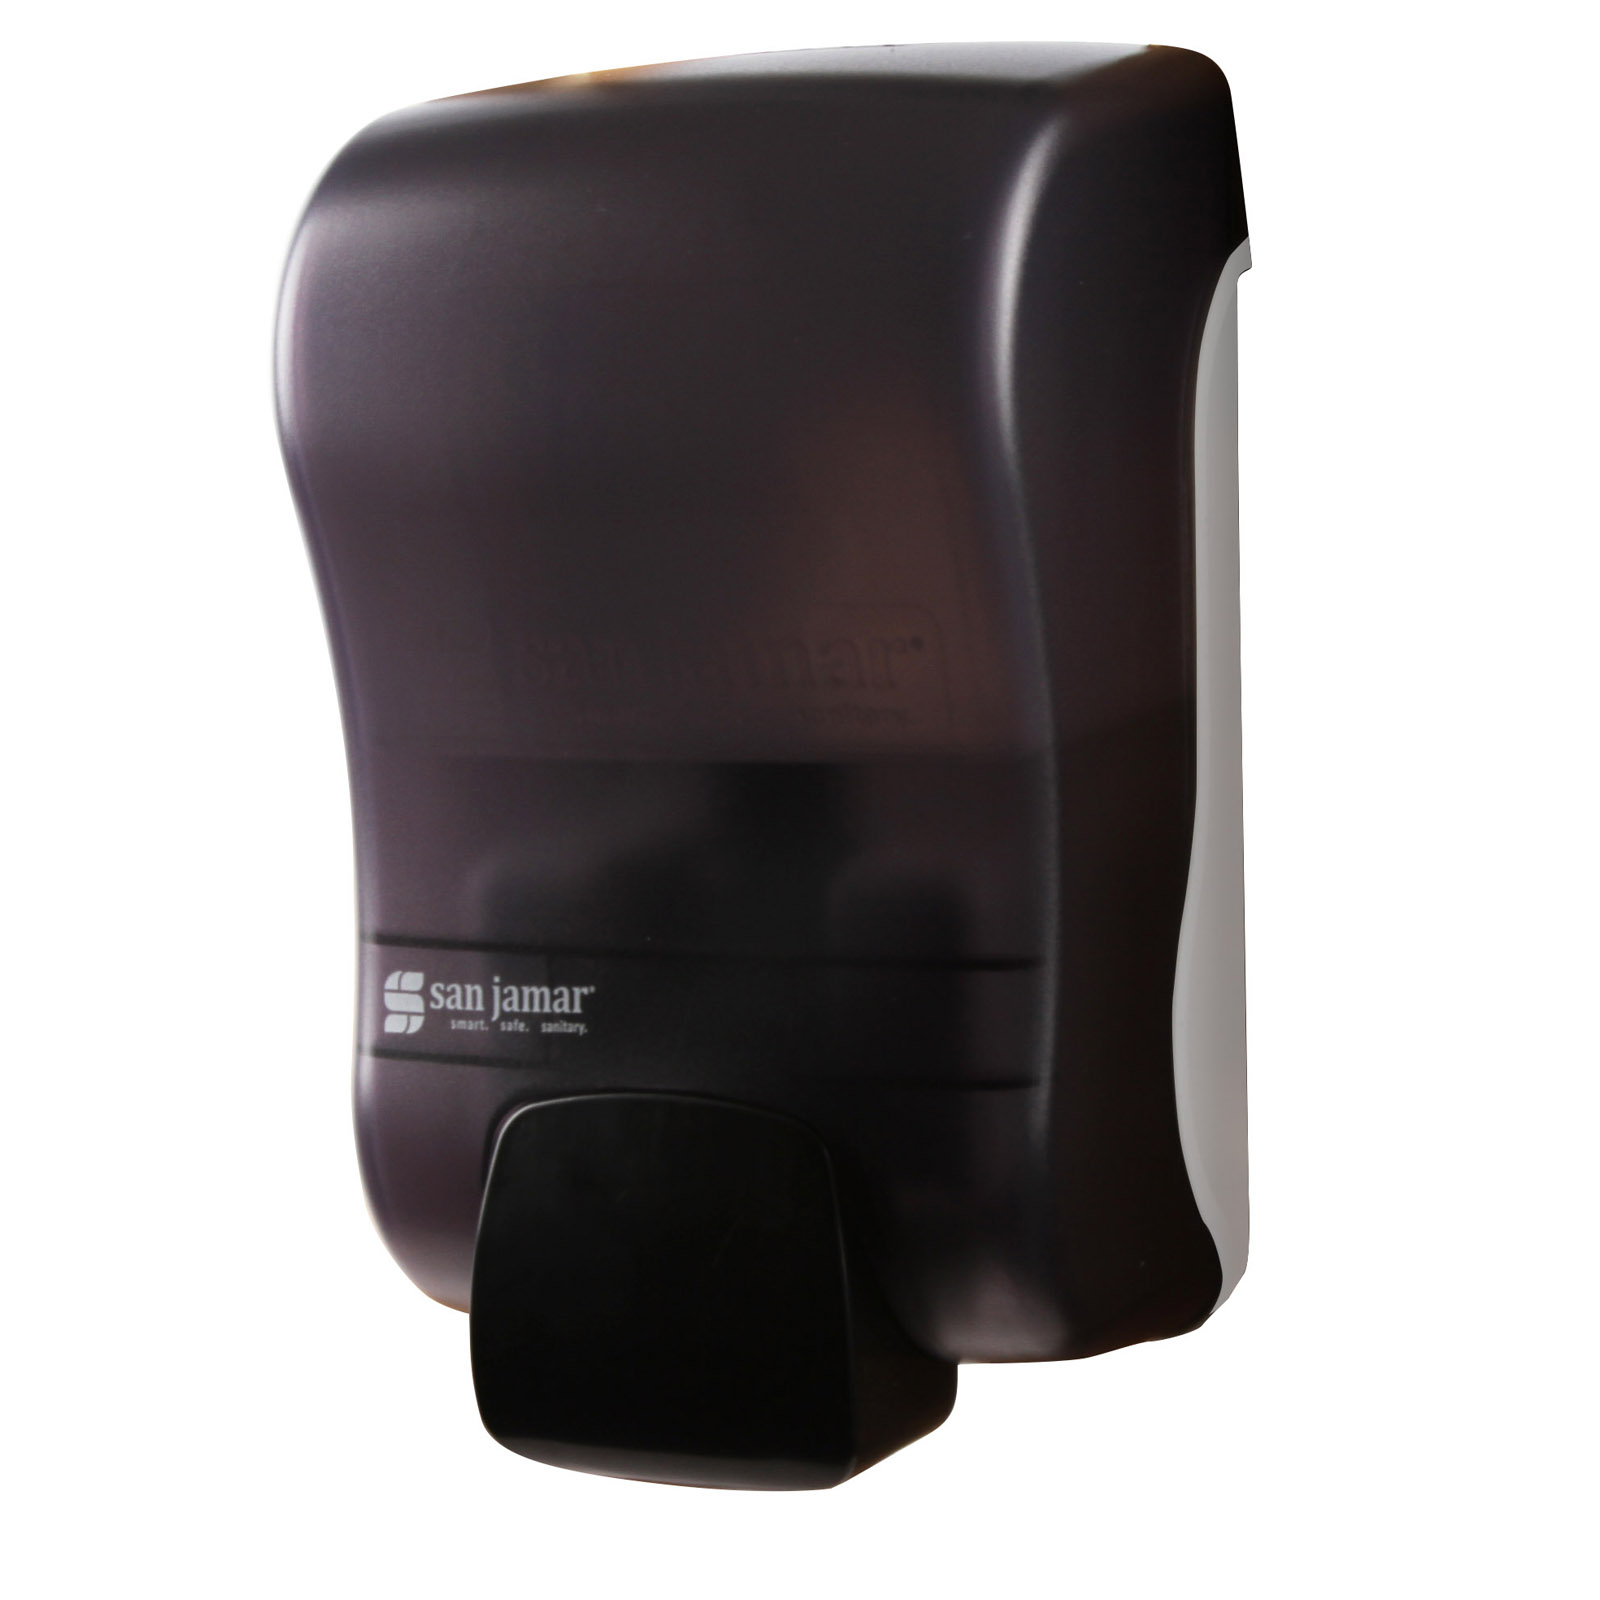 San Jamar S900TBK hand soap / sanitizer dispenser